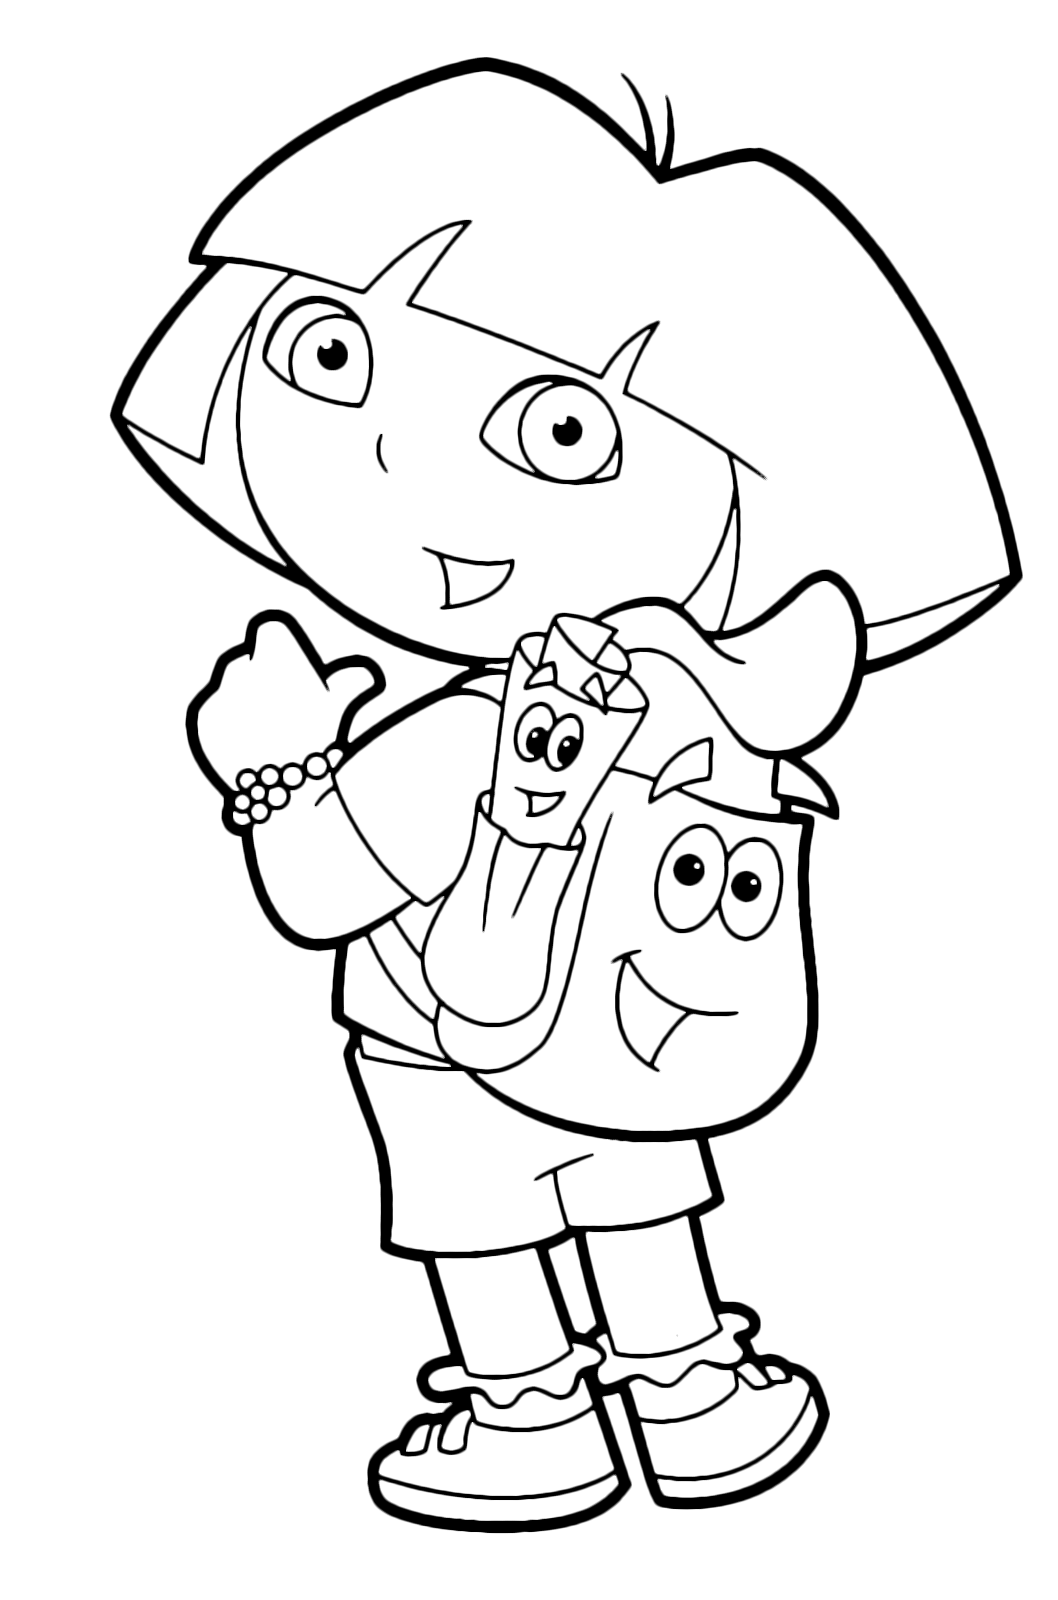 Dora the Explorer - Dora points Backpack and Map Dora Backpack With Map on